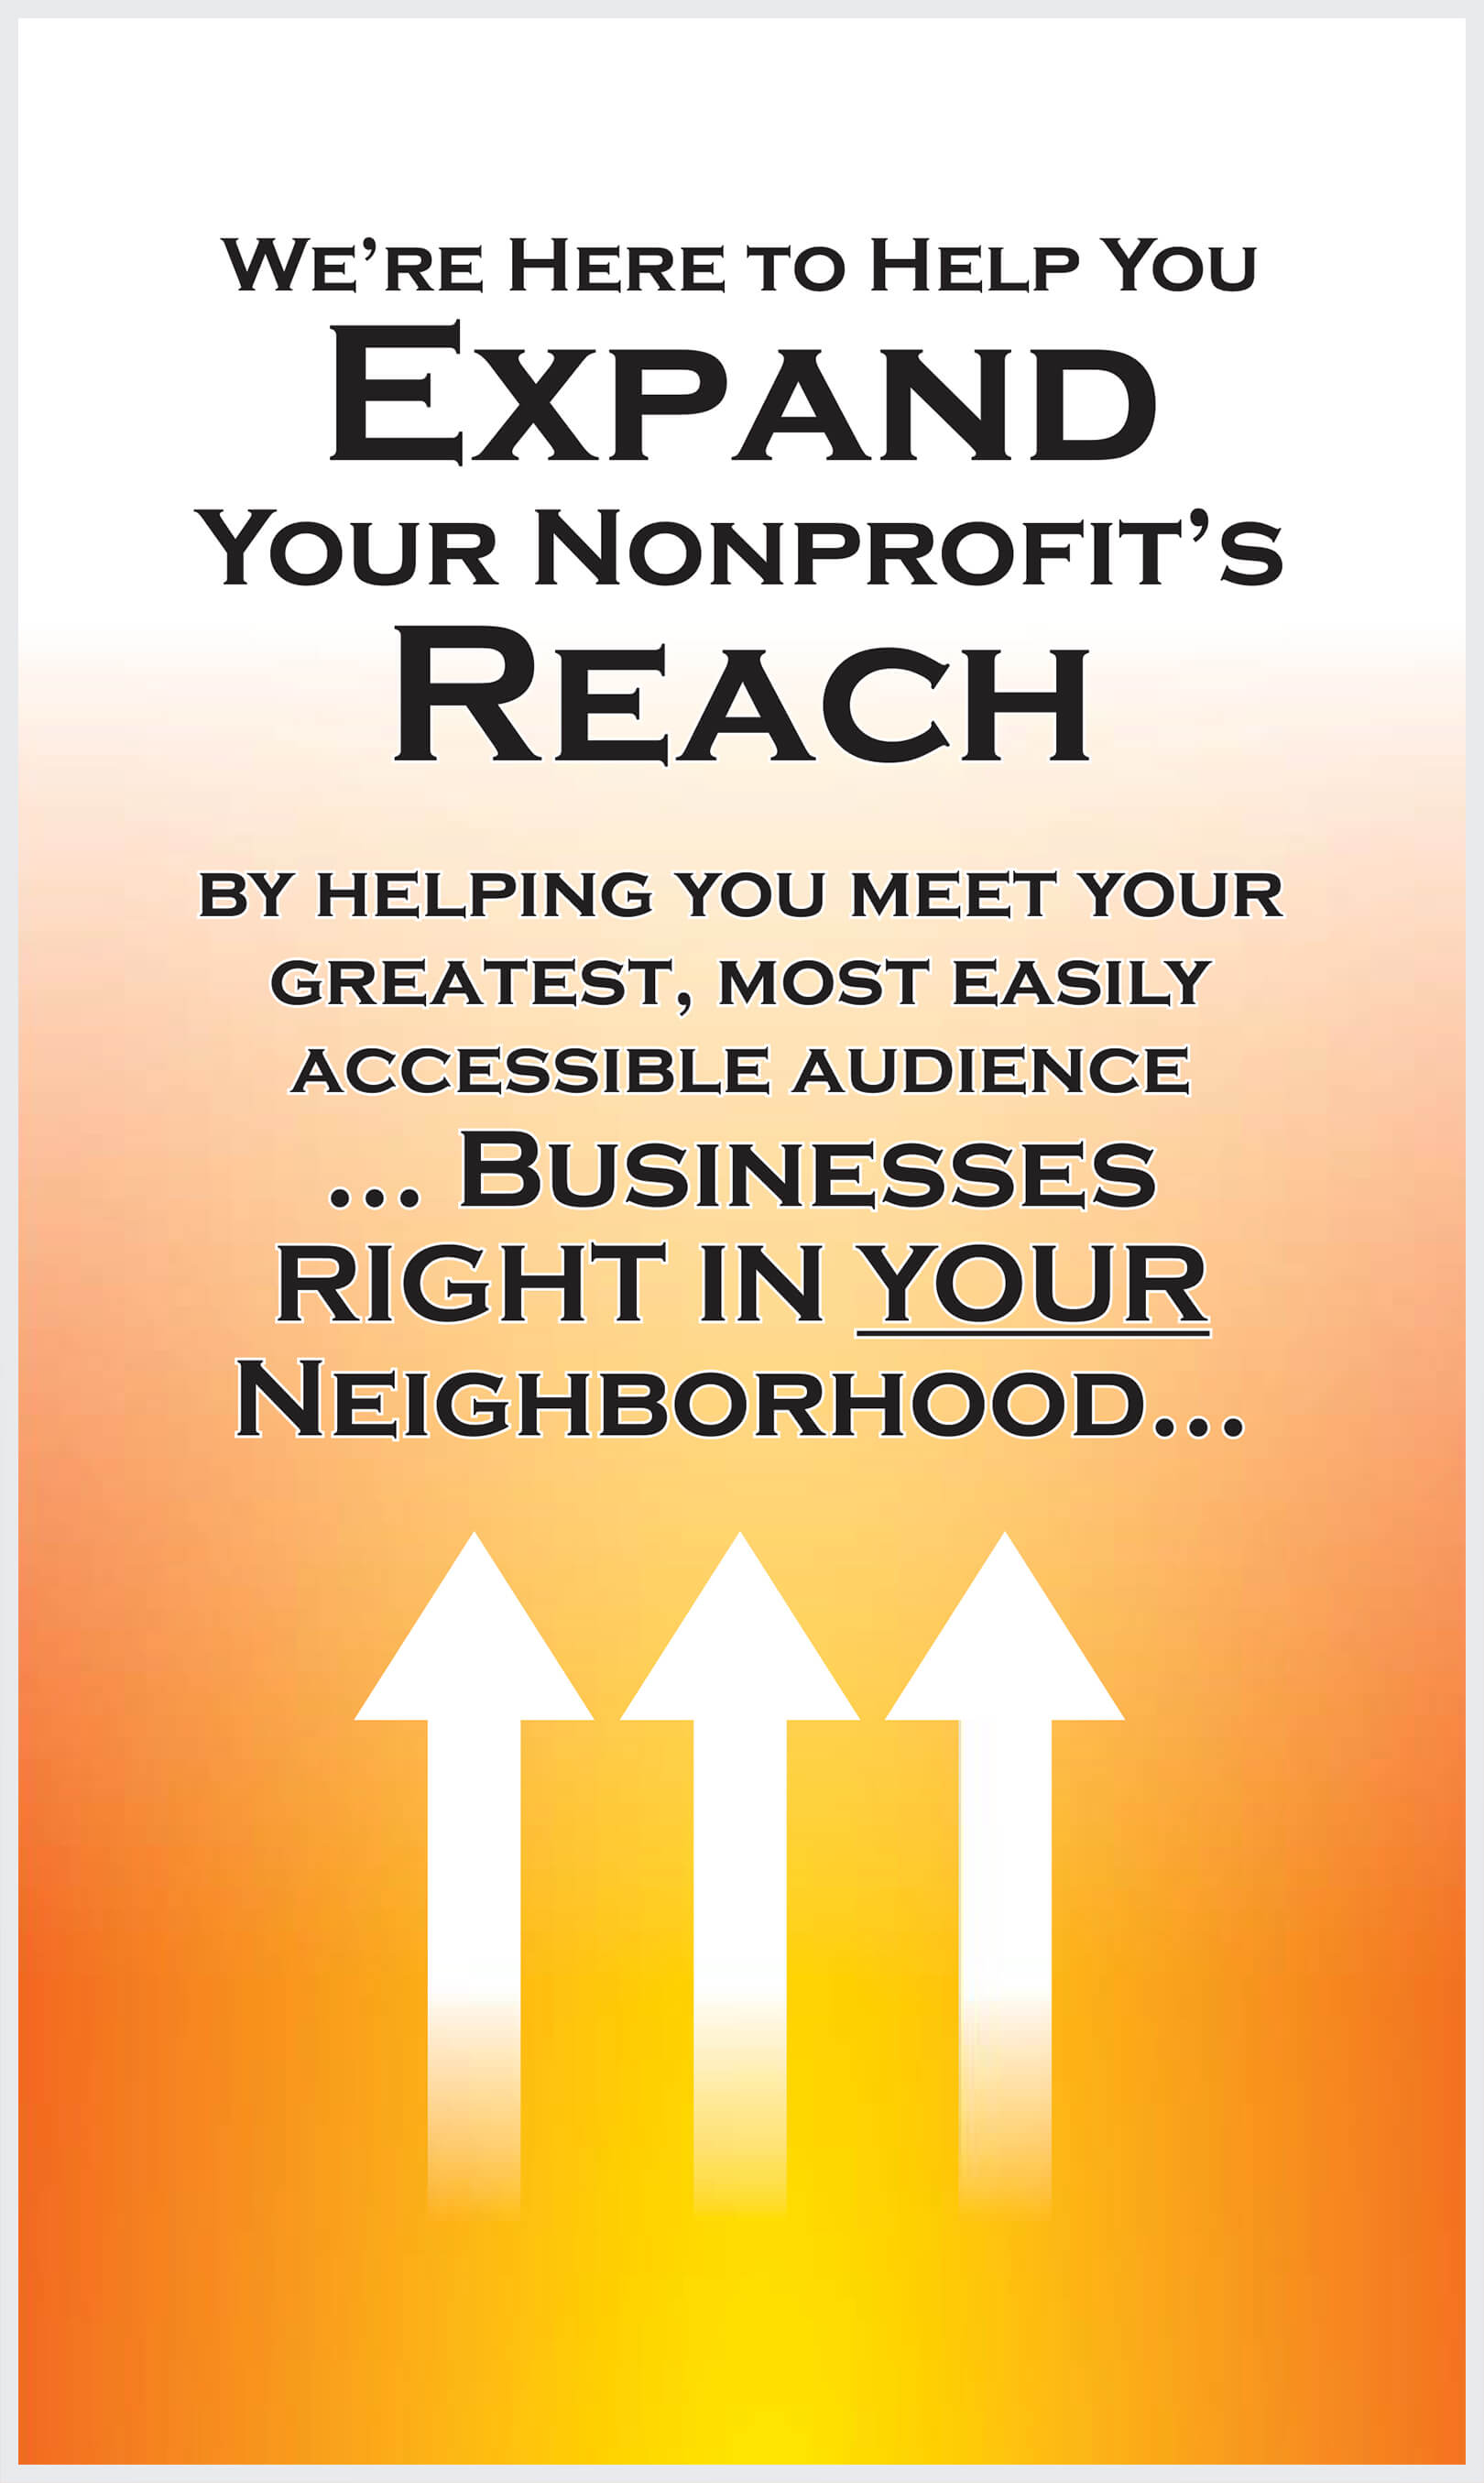 Expand Your Nonprofit's Reach!